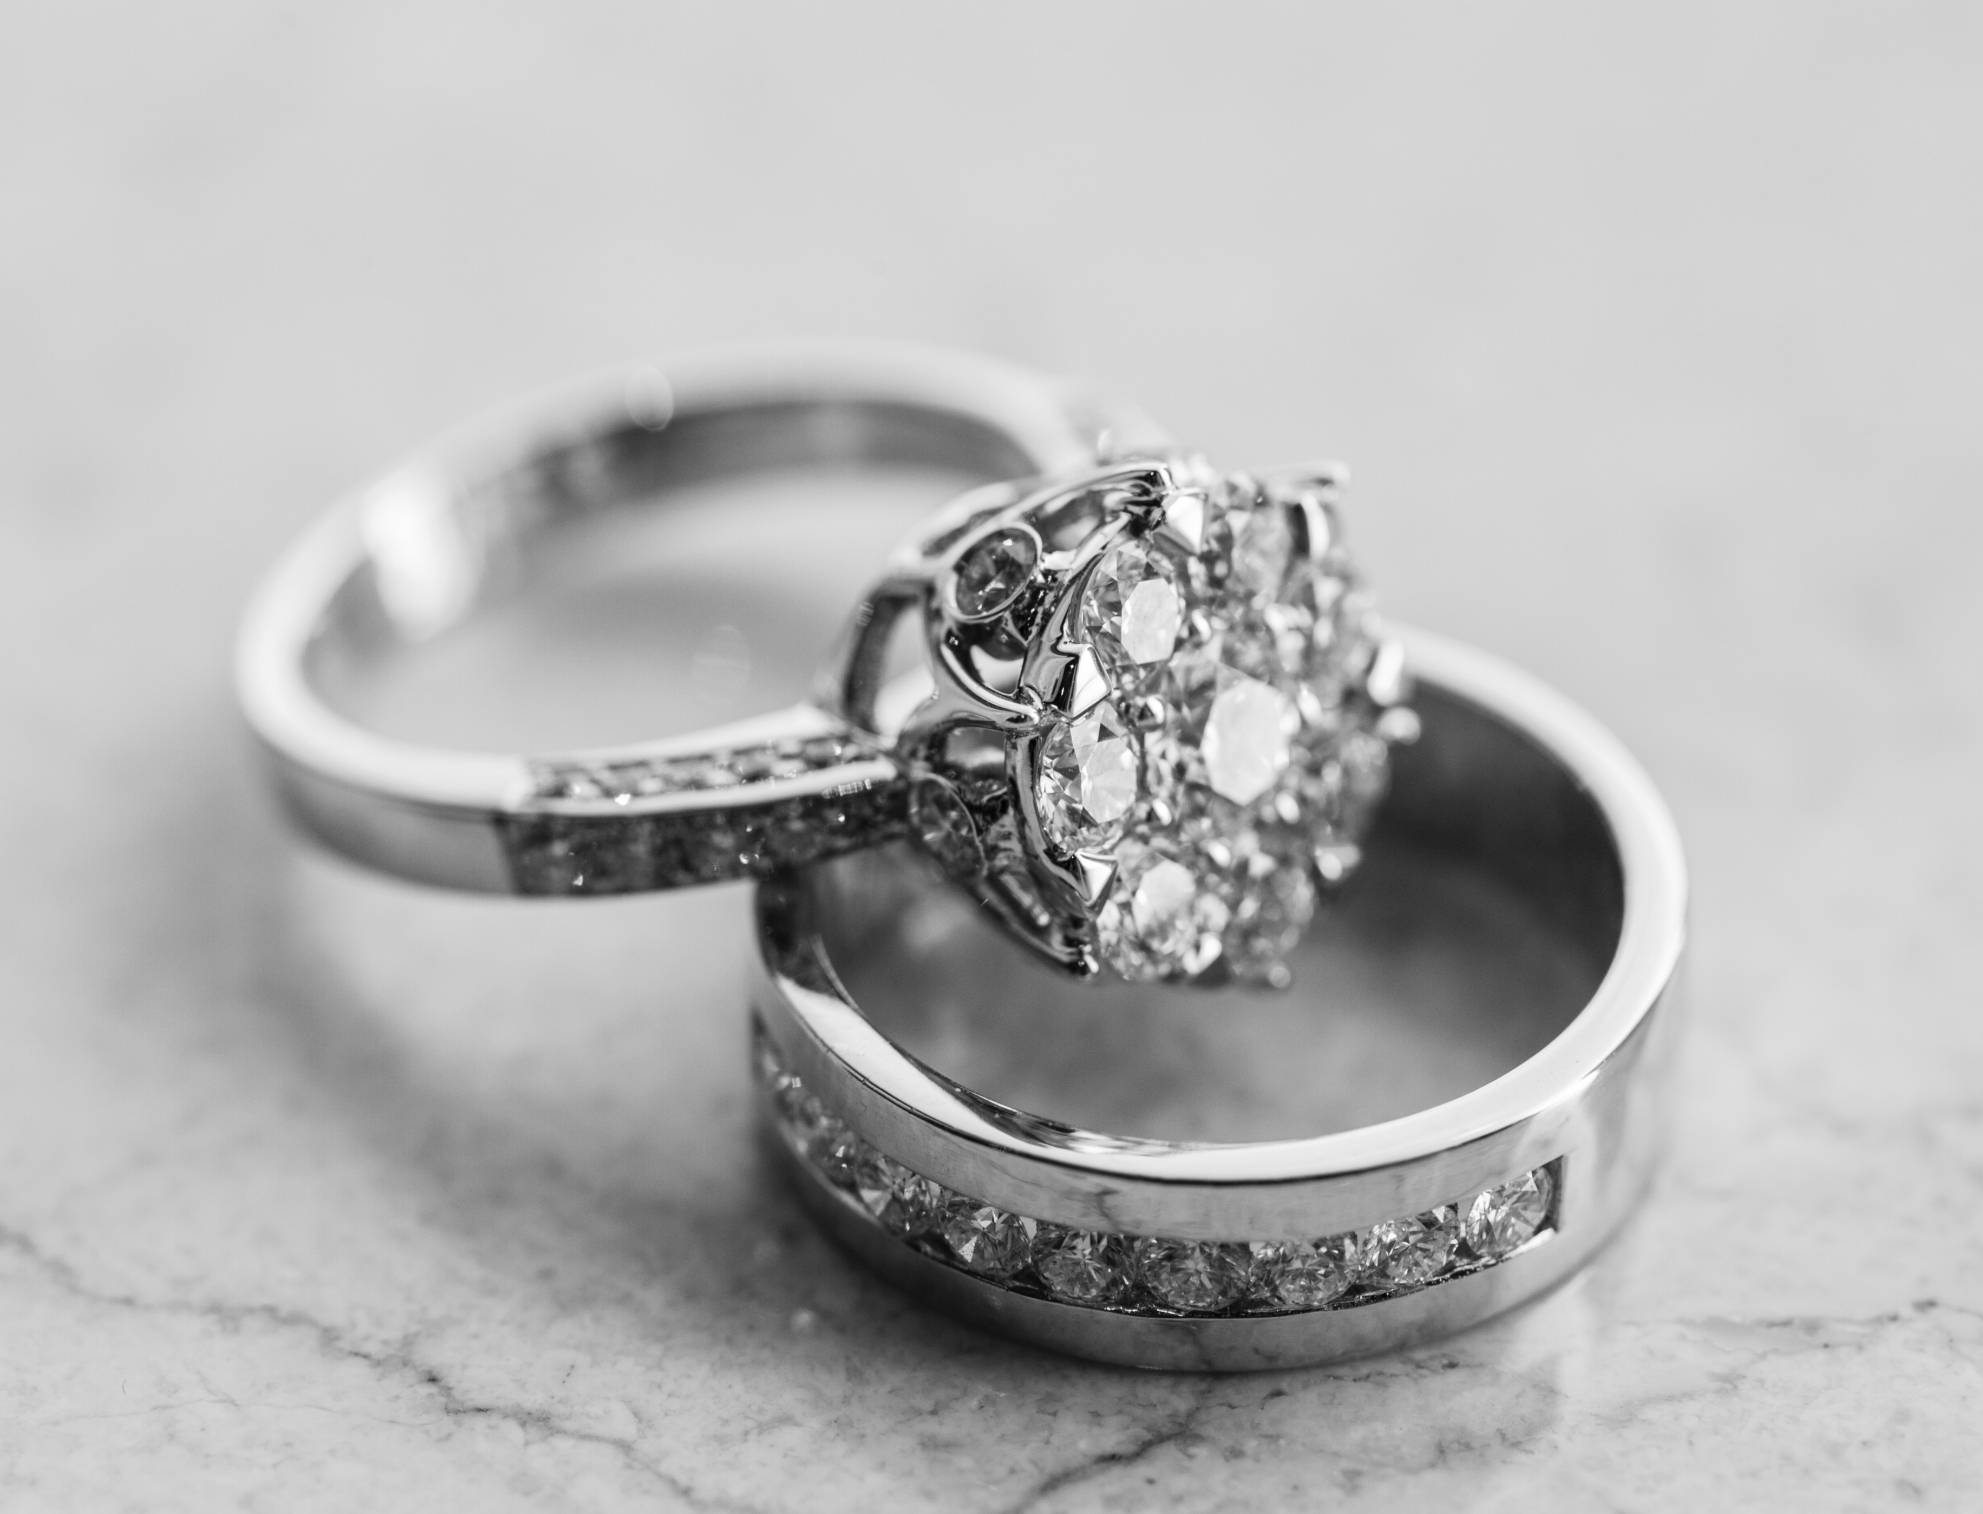 Tying The Knot On Engagement Ring Insurance For Tie The Knot Engagement Rings (Gallery 4 of 15)